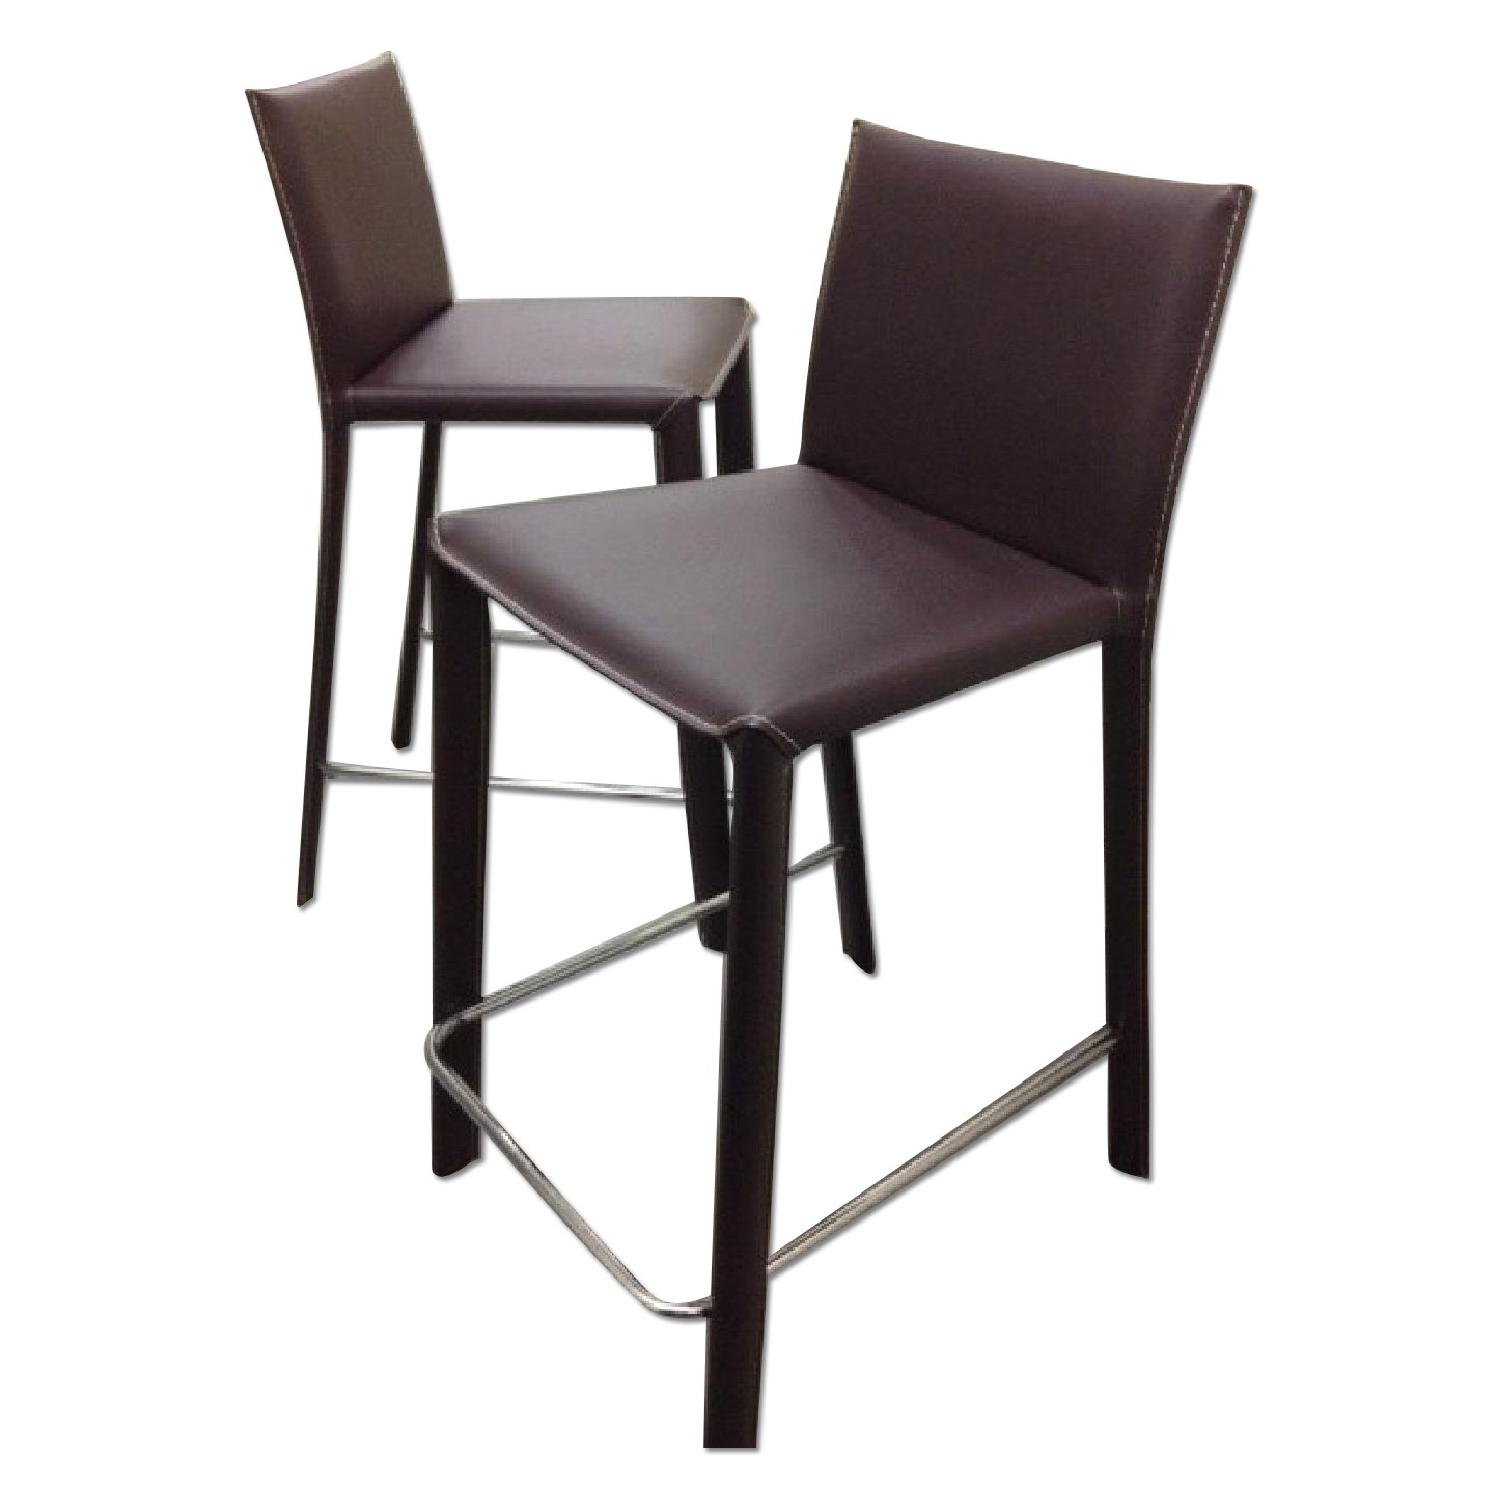 Modern Brown Leather Counter Stools (set of 2)